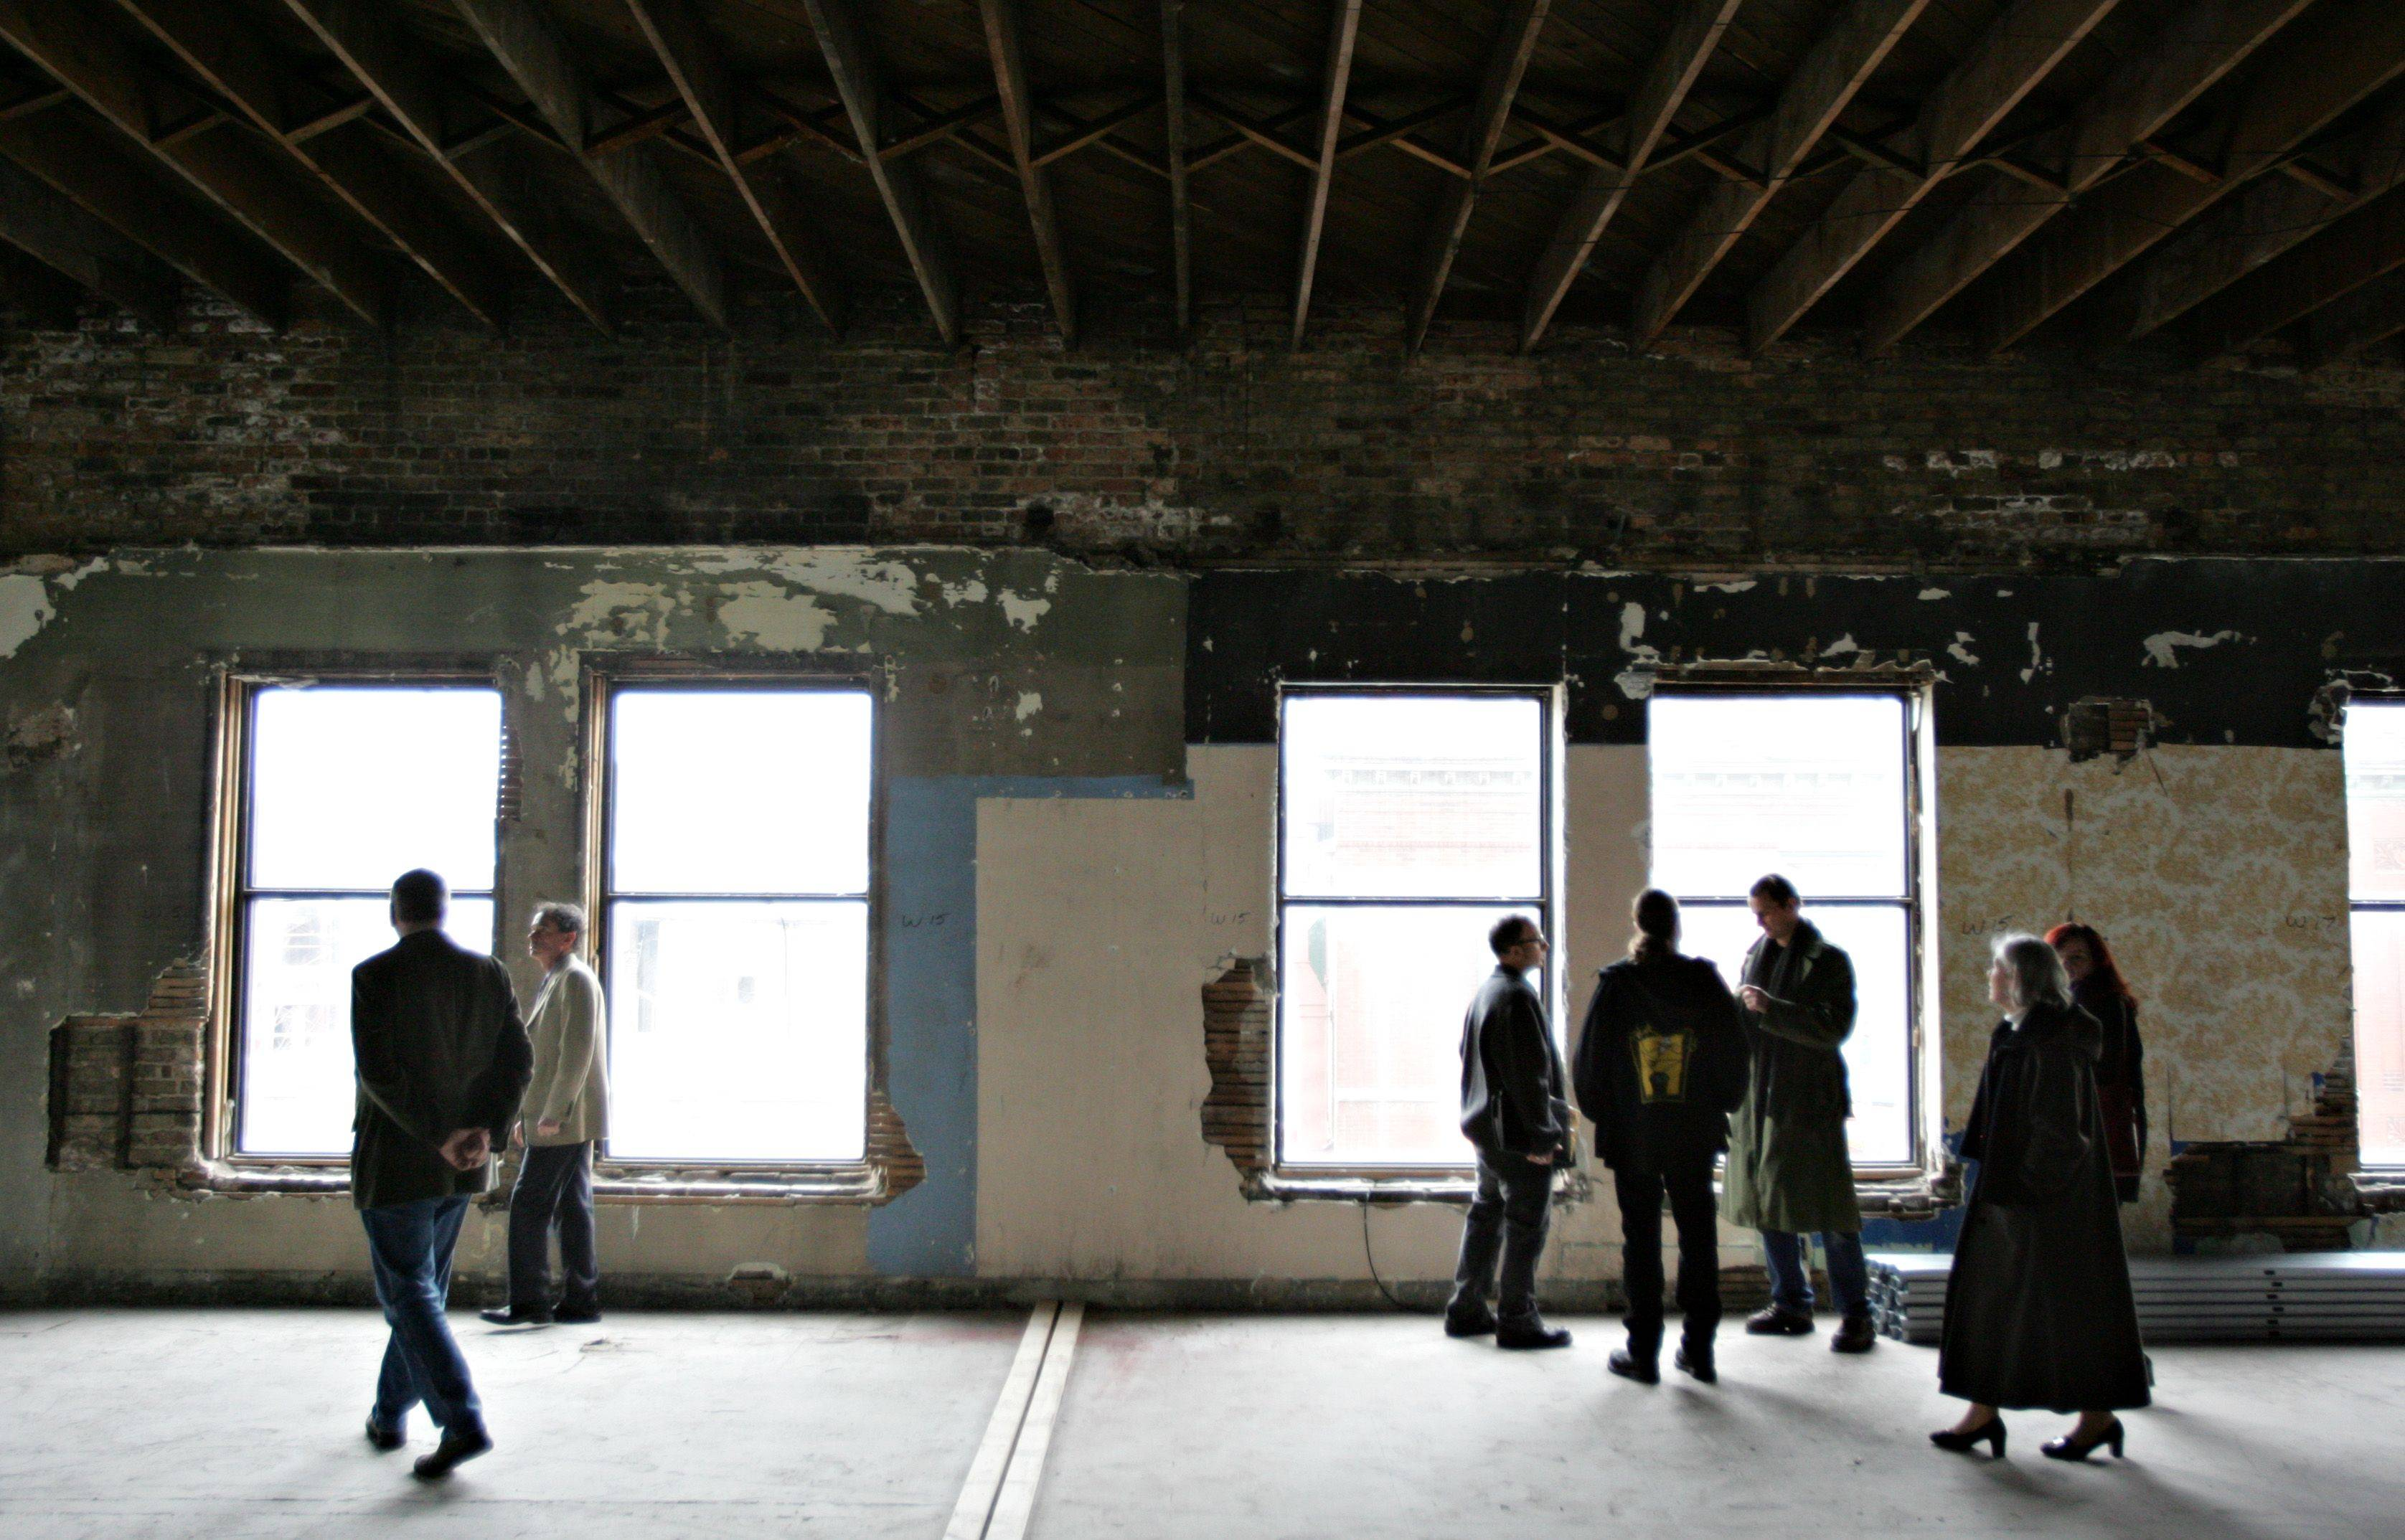 Community members and prospective renters gathered Tuesday to tour the progress of the Artspace project as part of the Downtown Neighborhood Association's January Out to Lunch event. Construction is expected to finish in October.